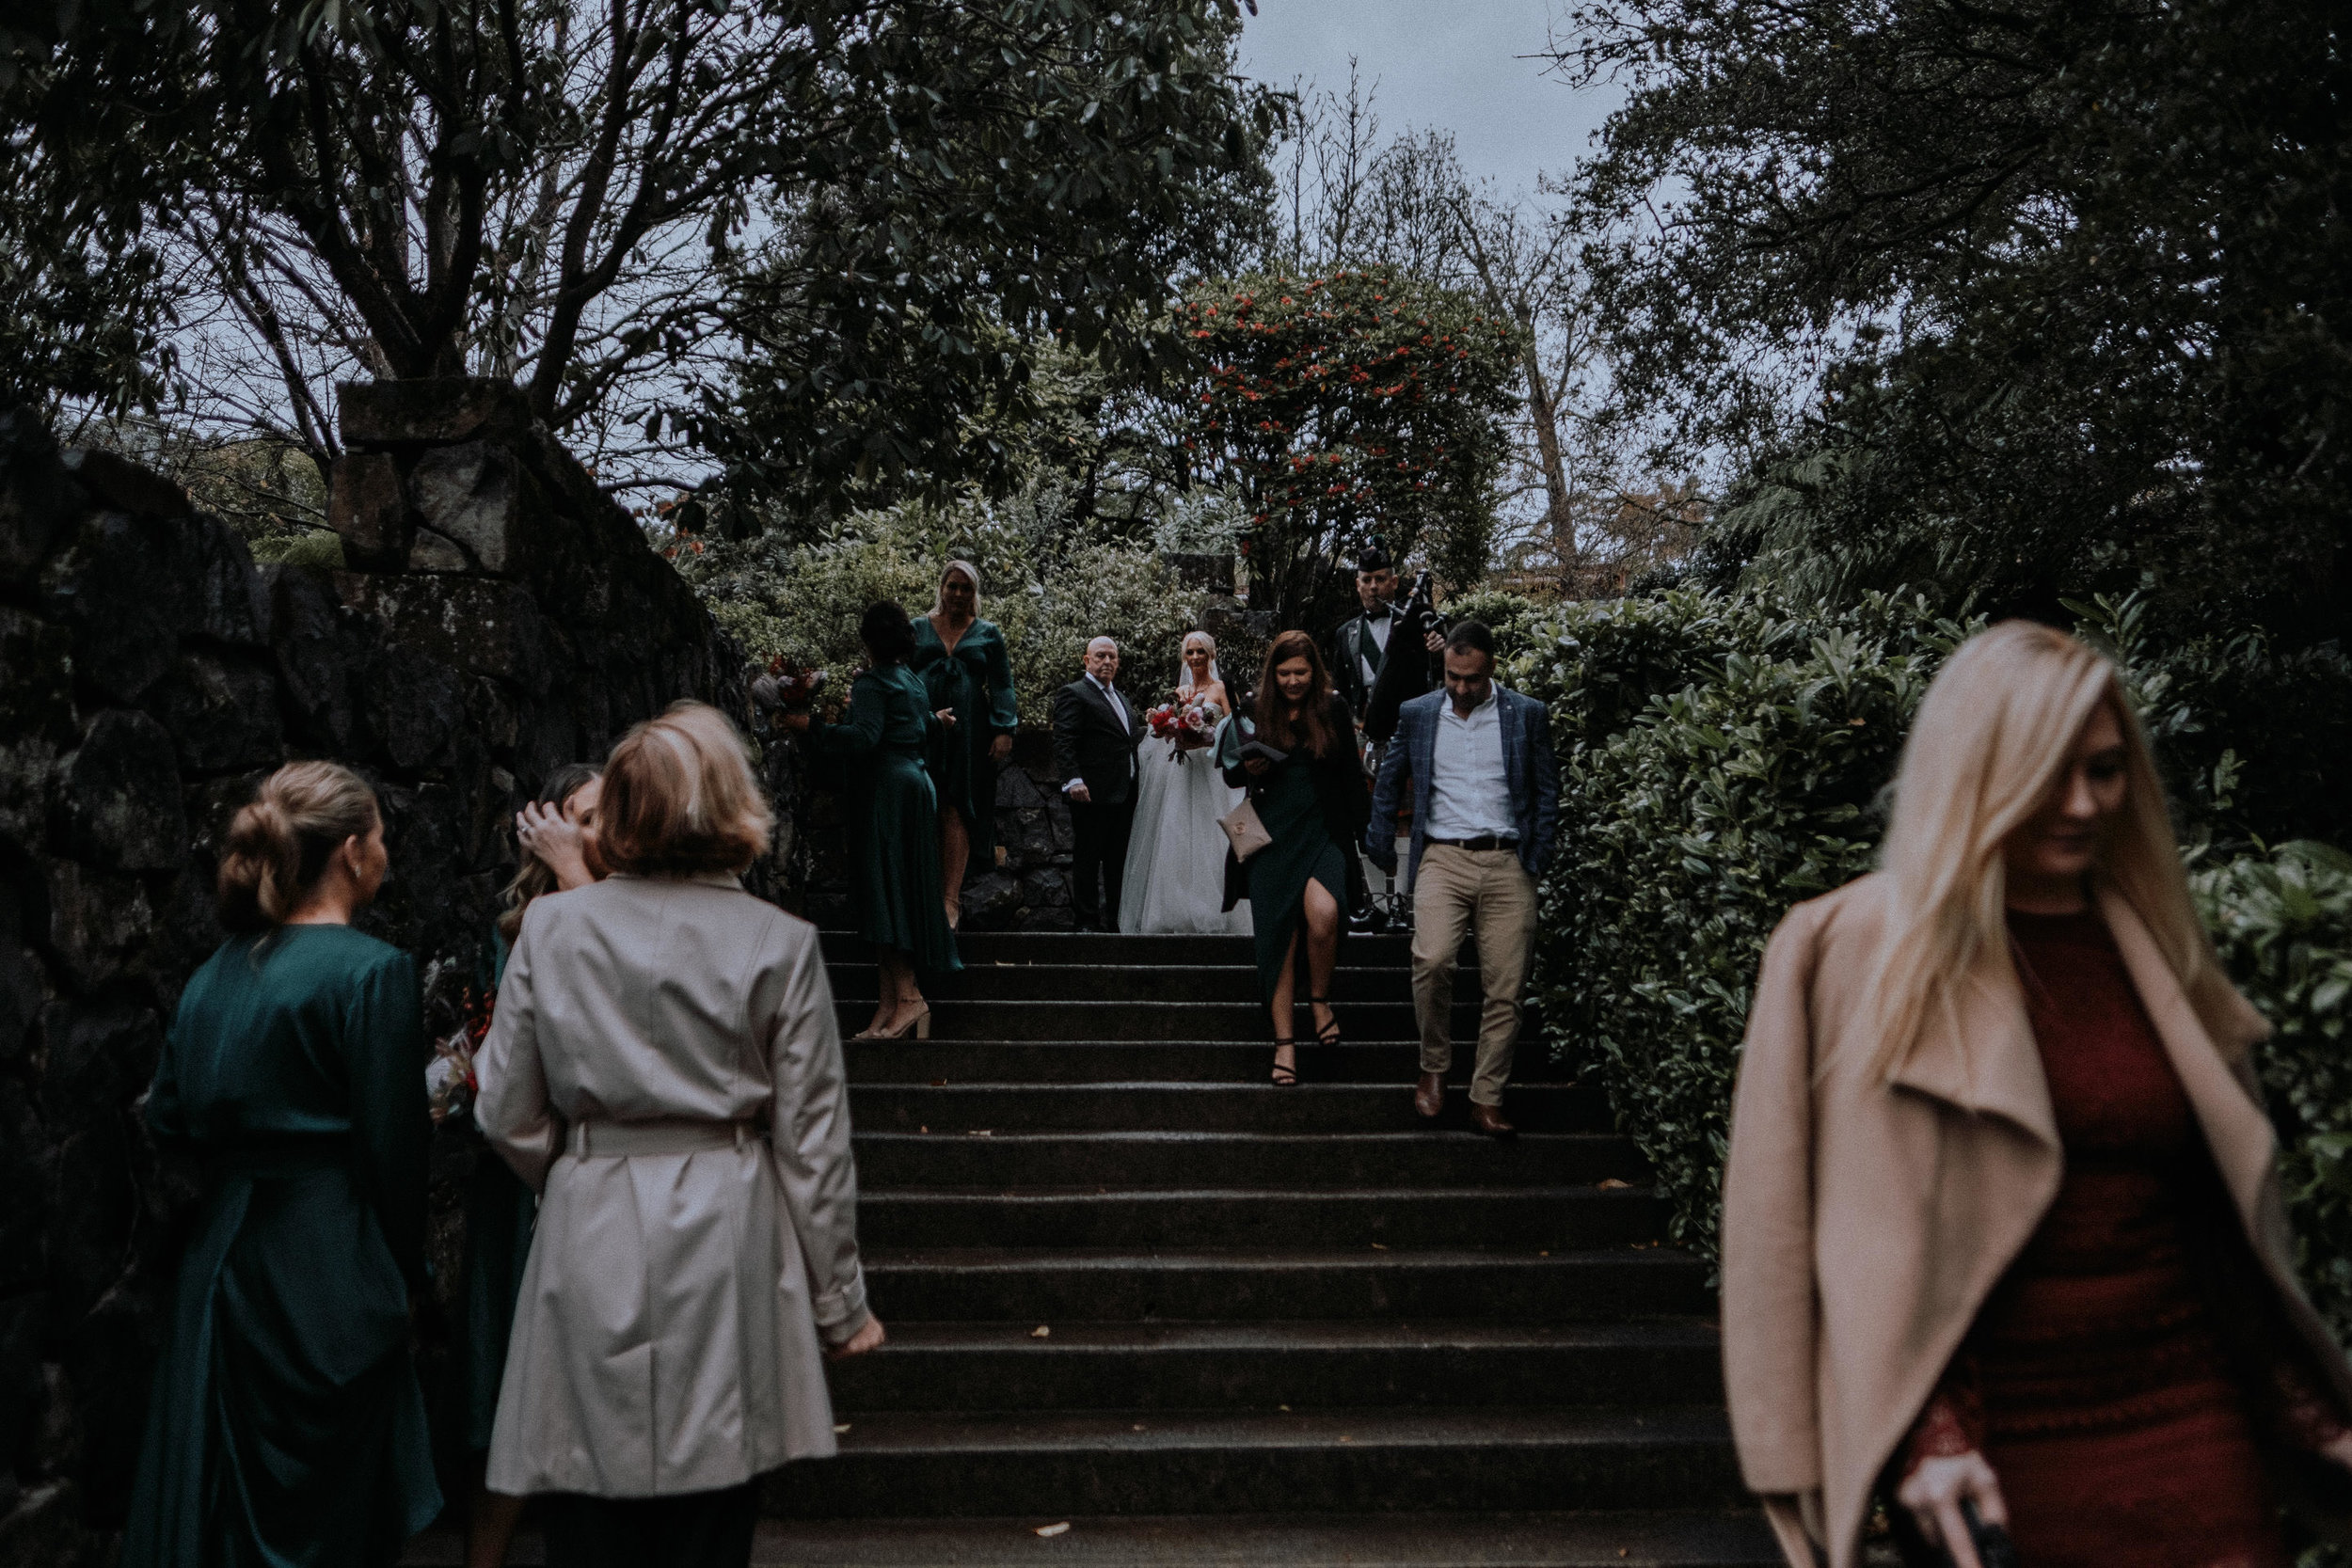 A bride about to walk down the aisle with her father on concrete steps at Mt Tomah Botanic Garden